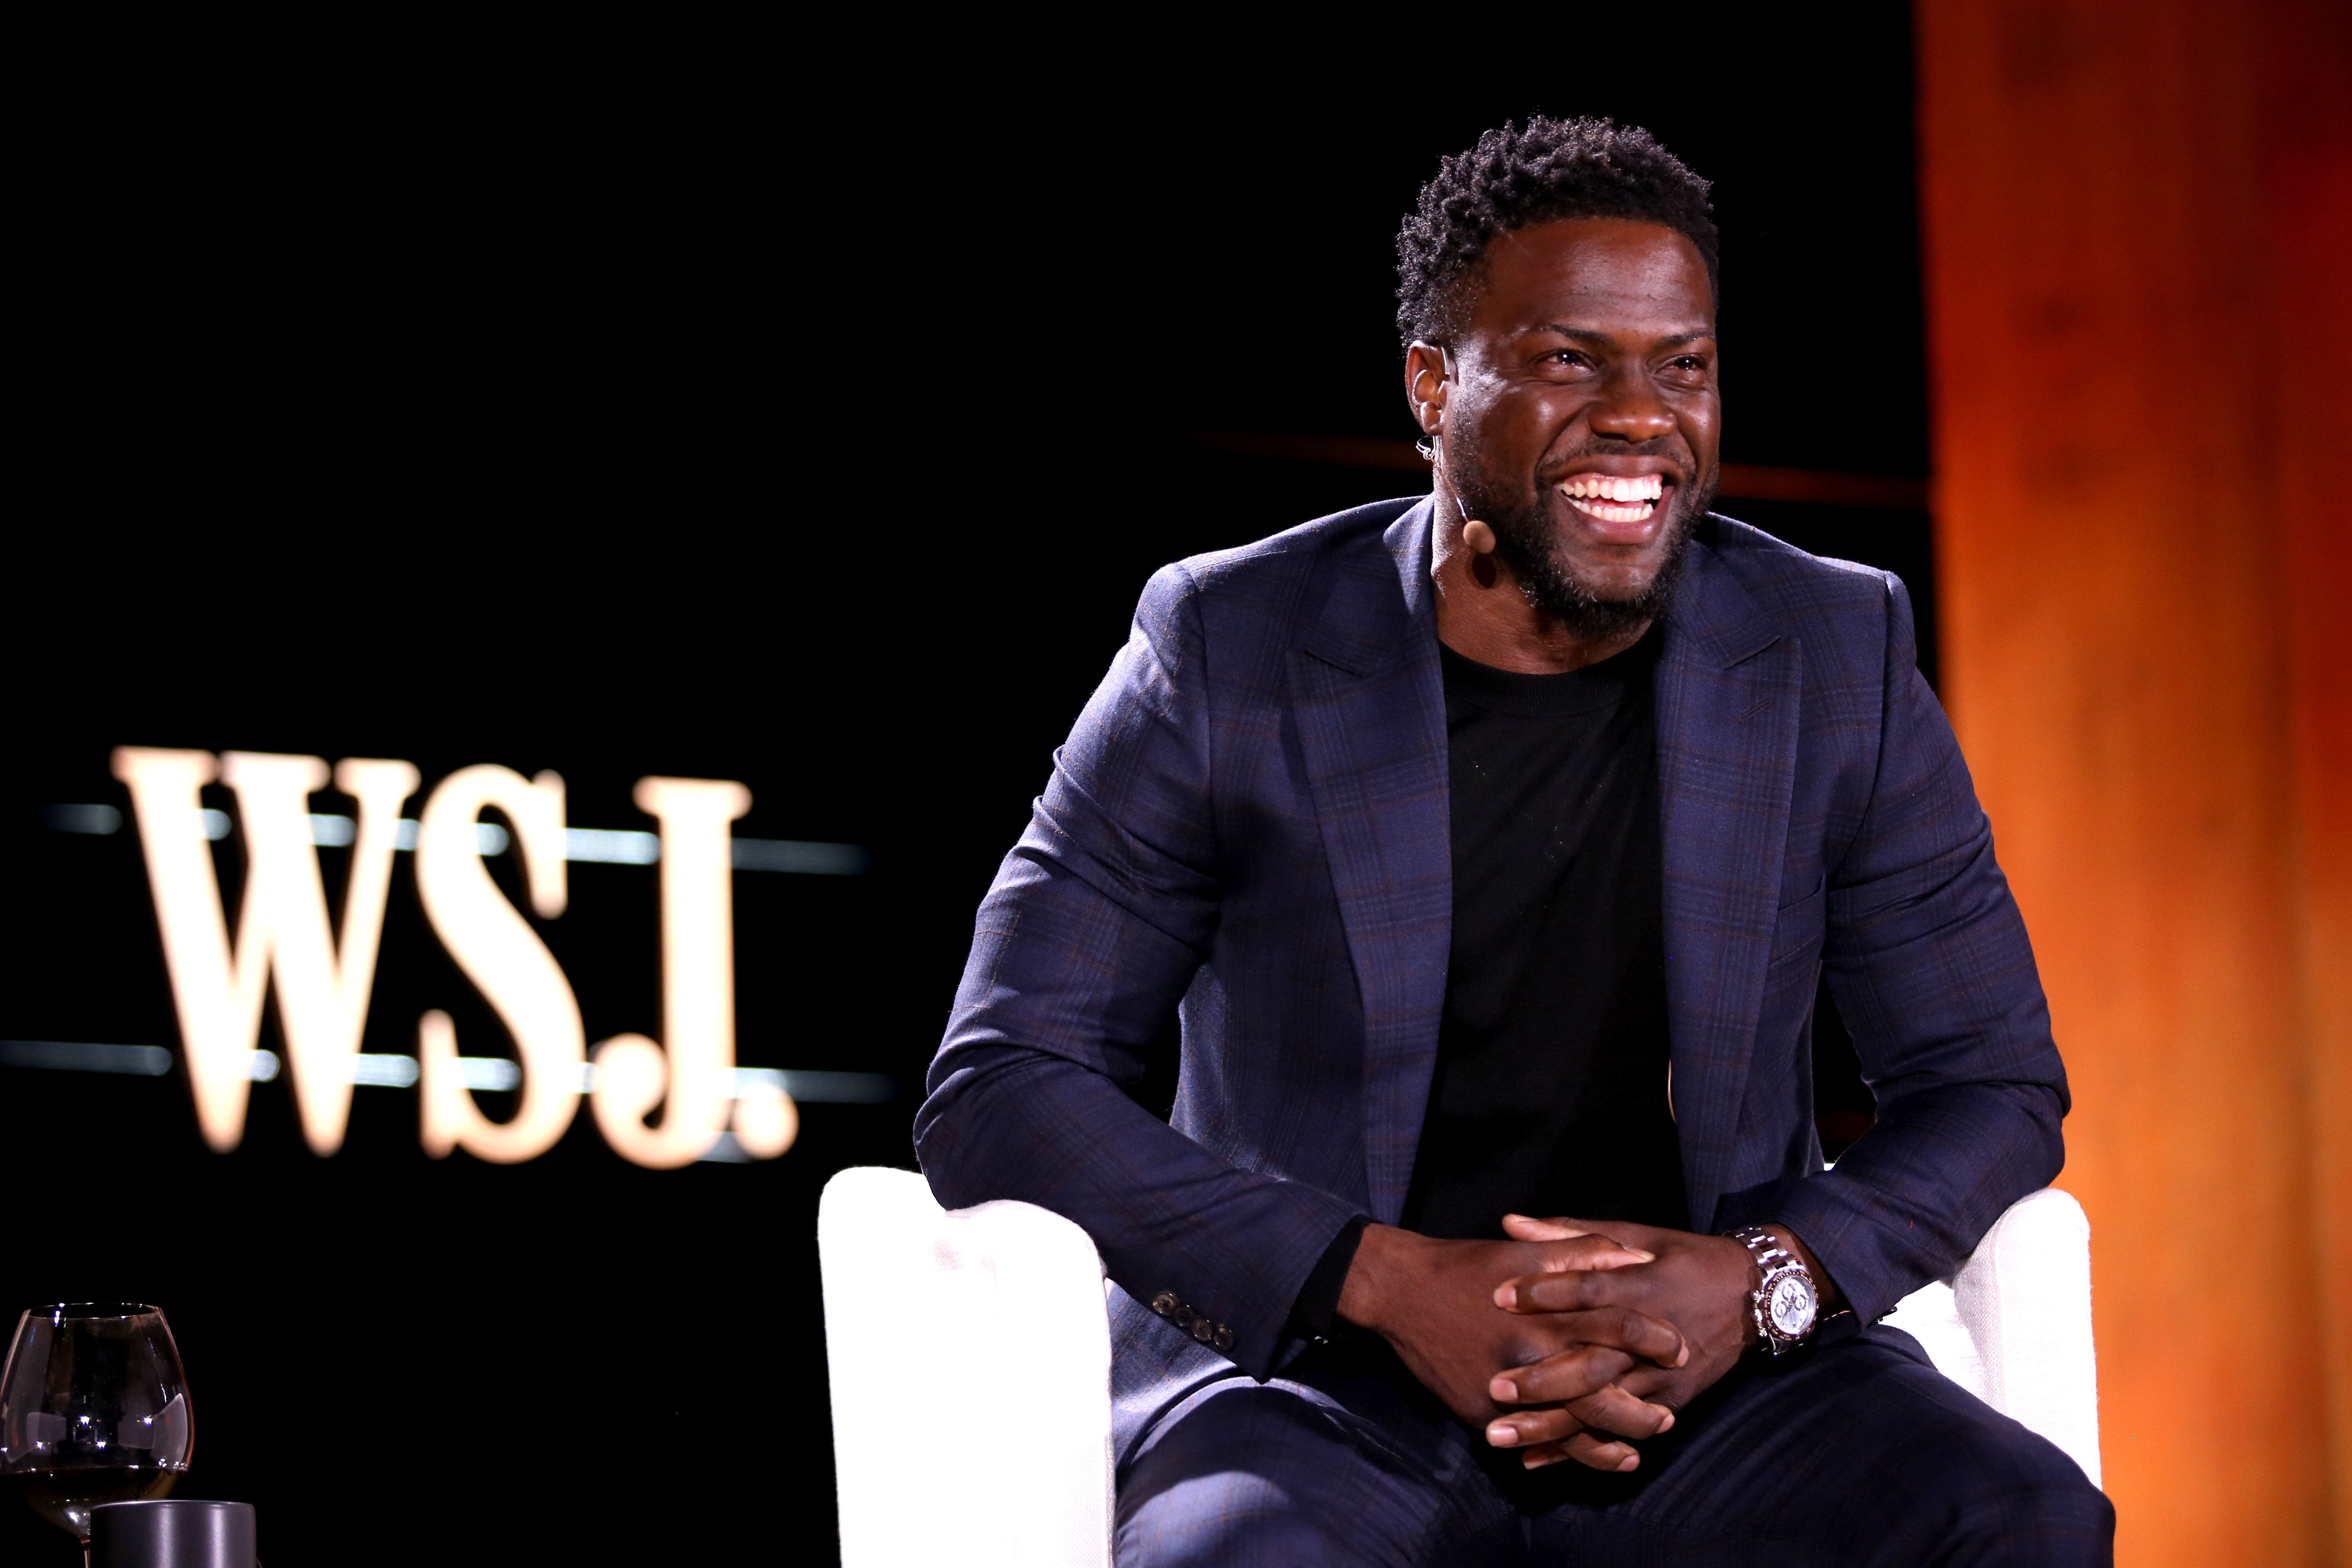 Say hello to Kevin Hart, your next Oscar host.